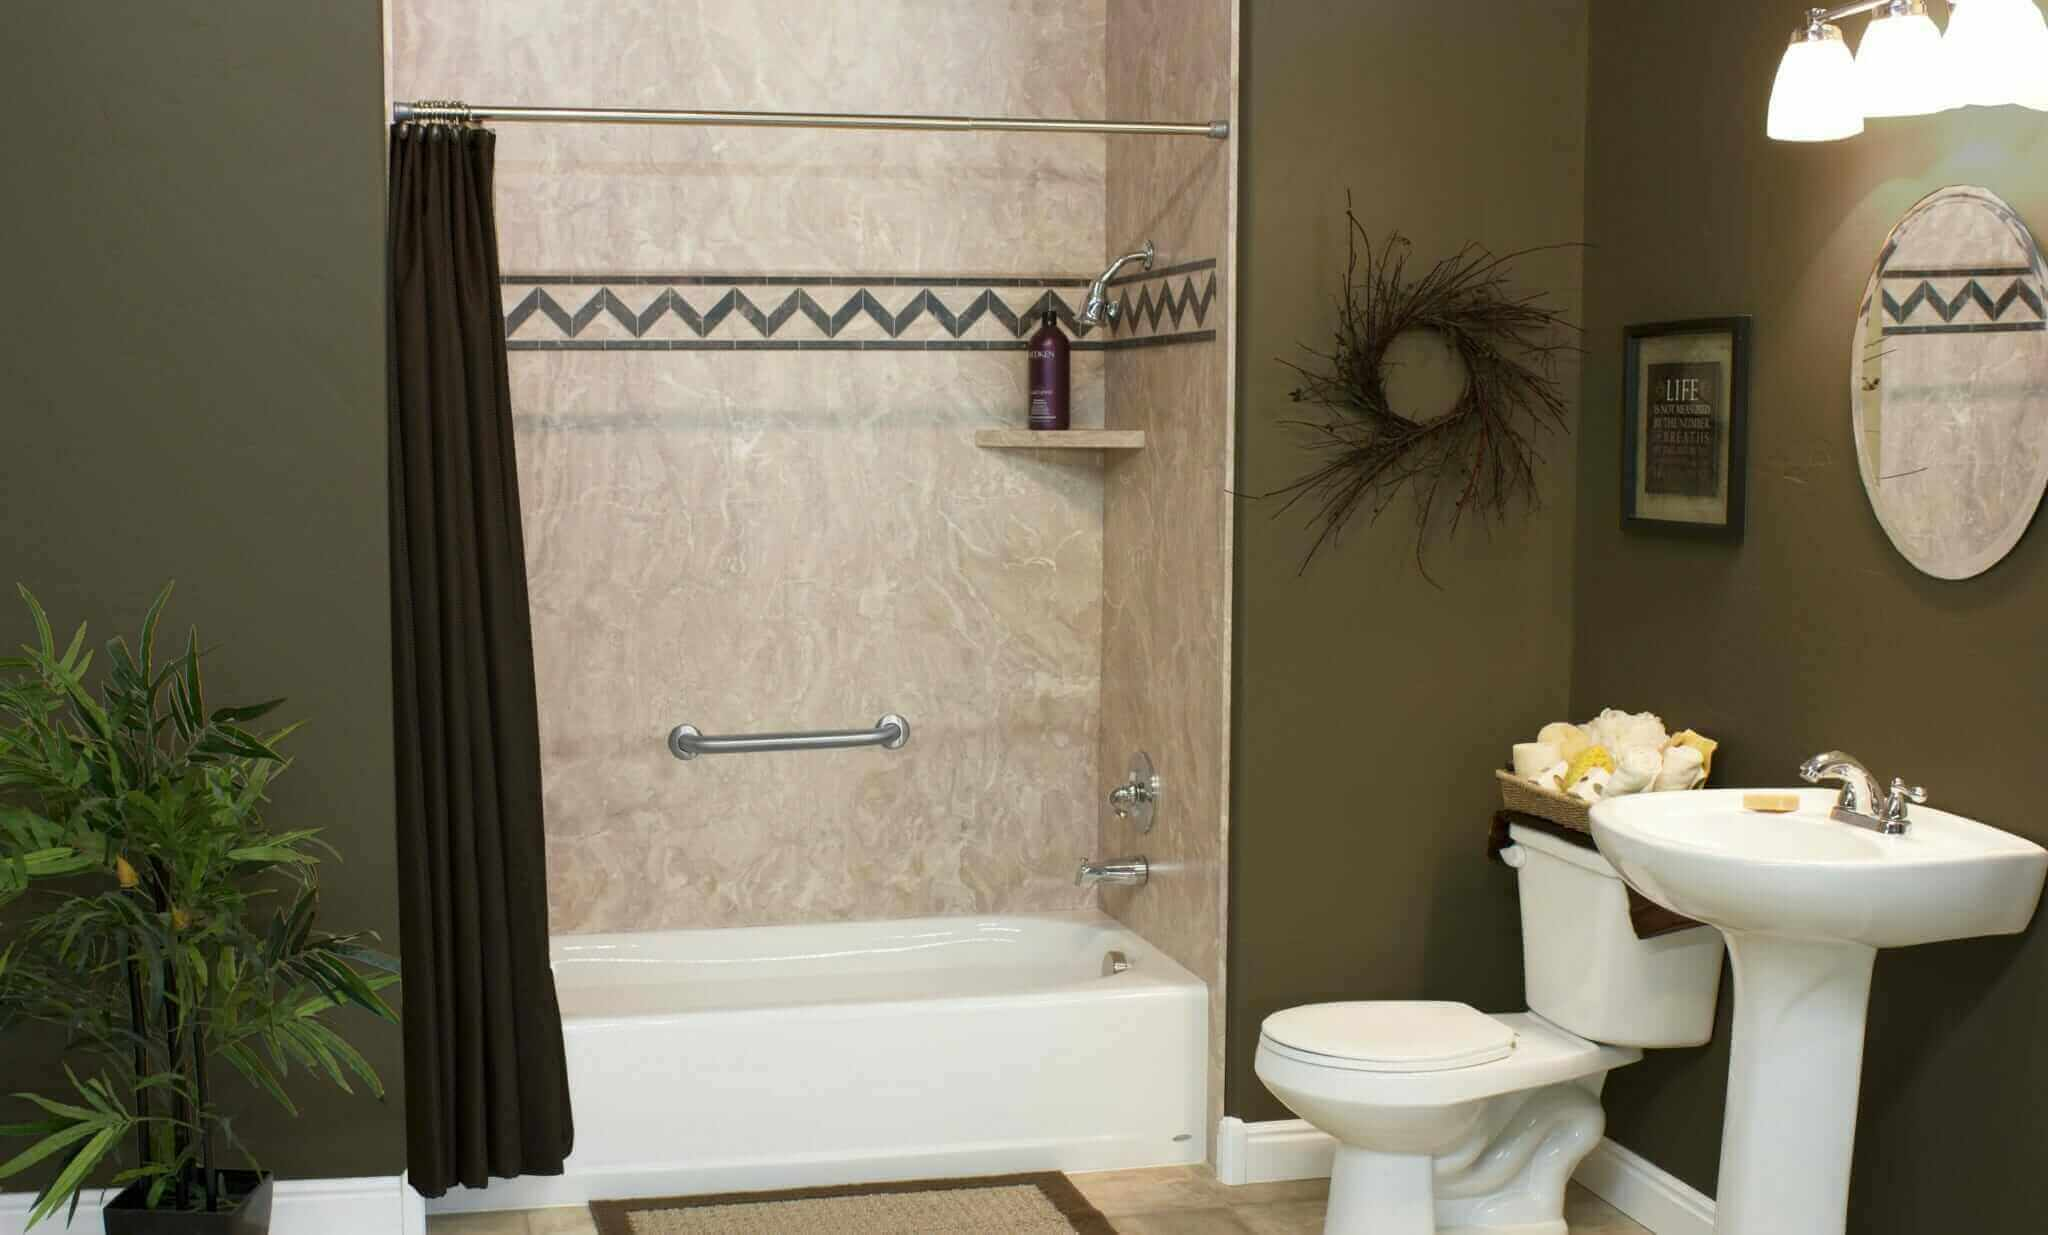 Caring for Your New Acrylic Bathtub